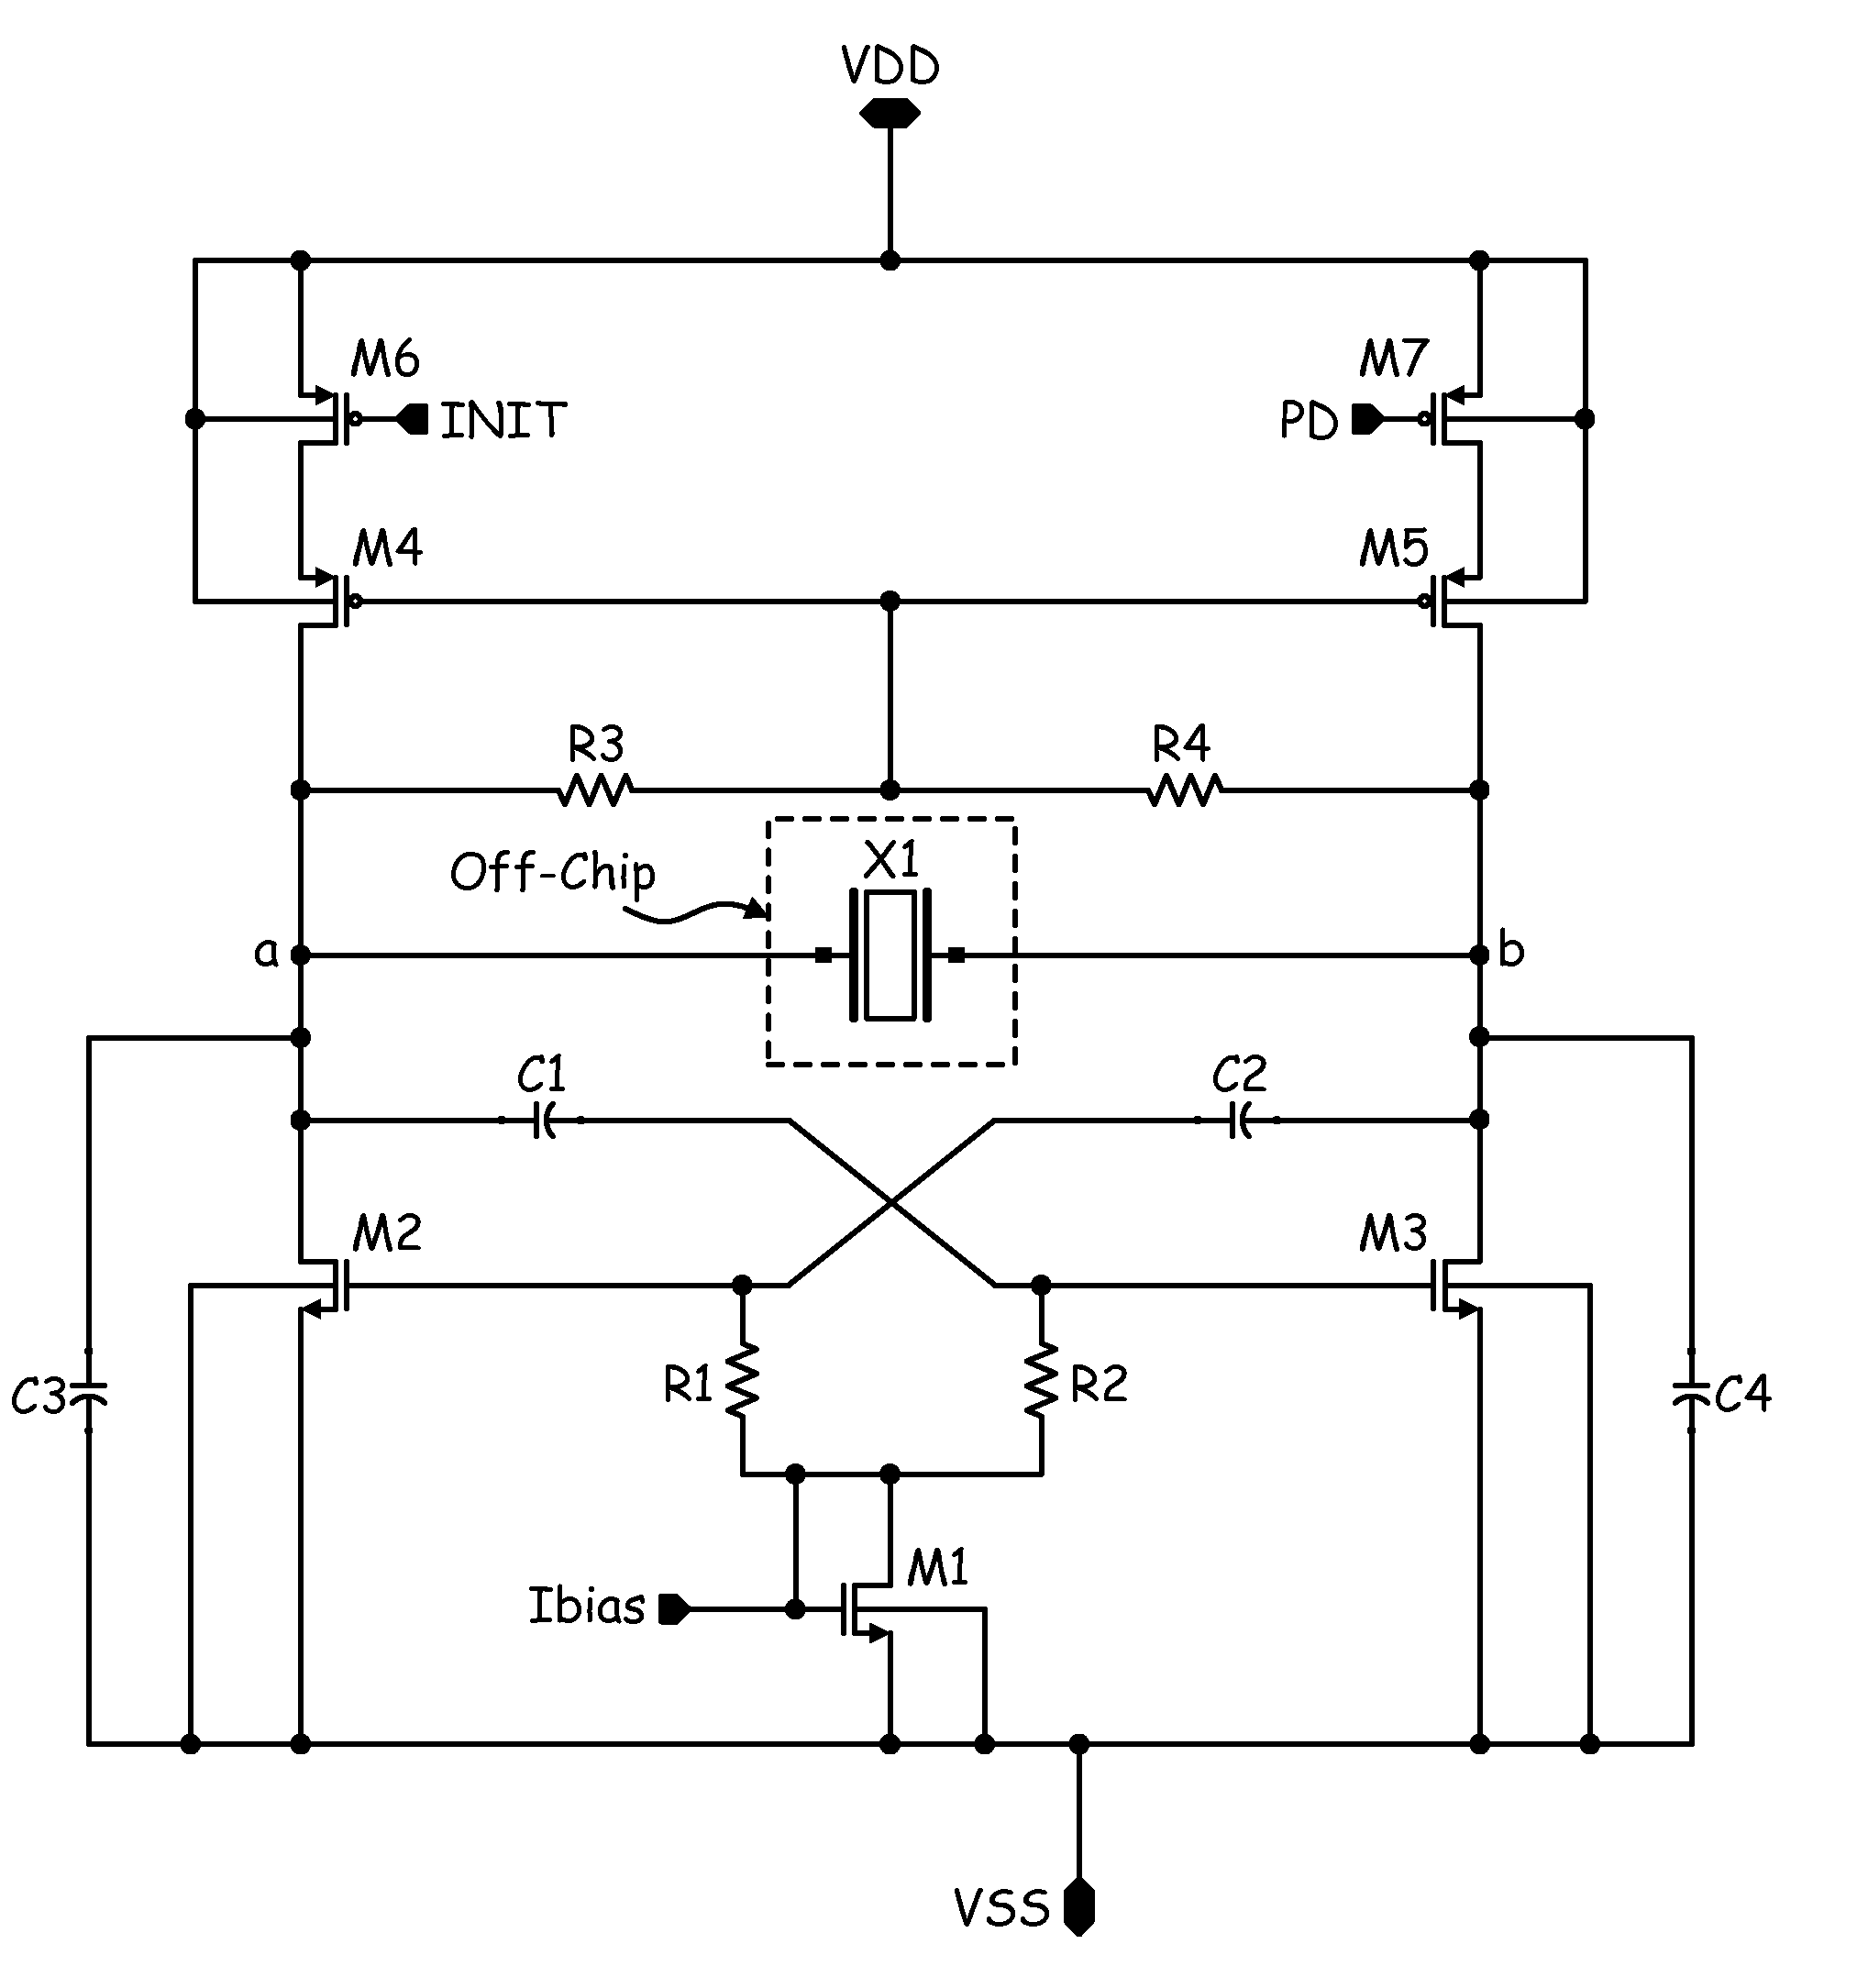 Draw Circuit Diagram Of Crystal Oscillator Patent Us7768359 Low Phase Noise Differential